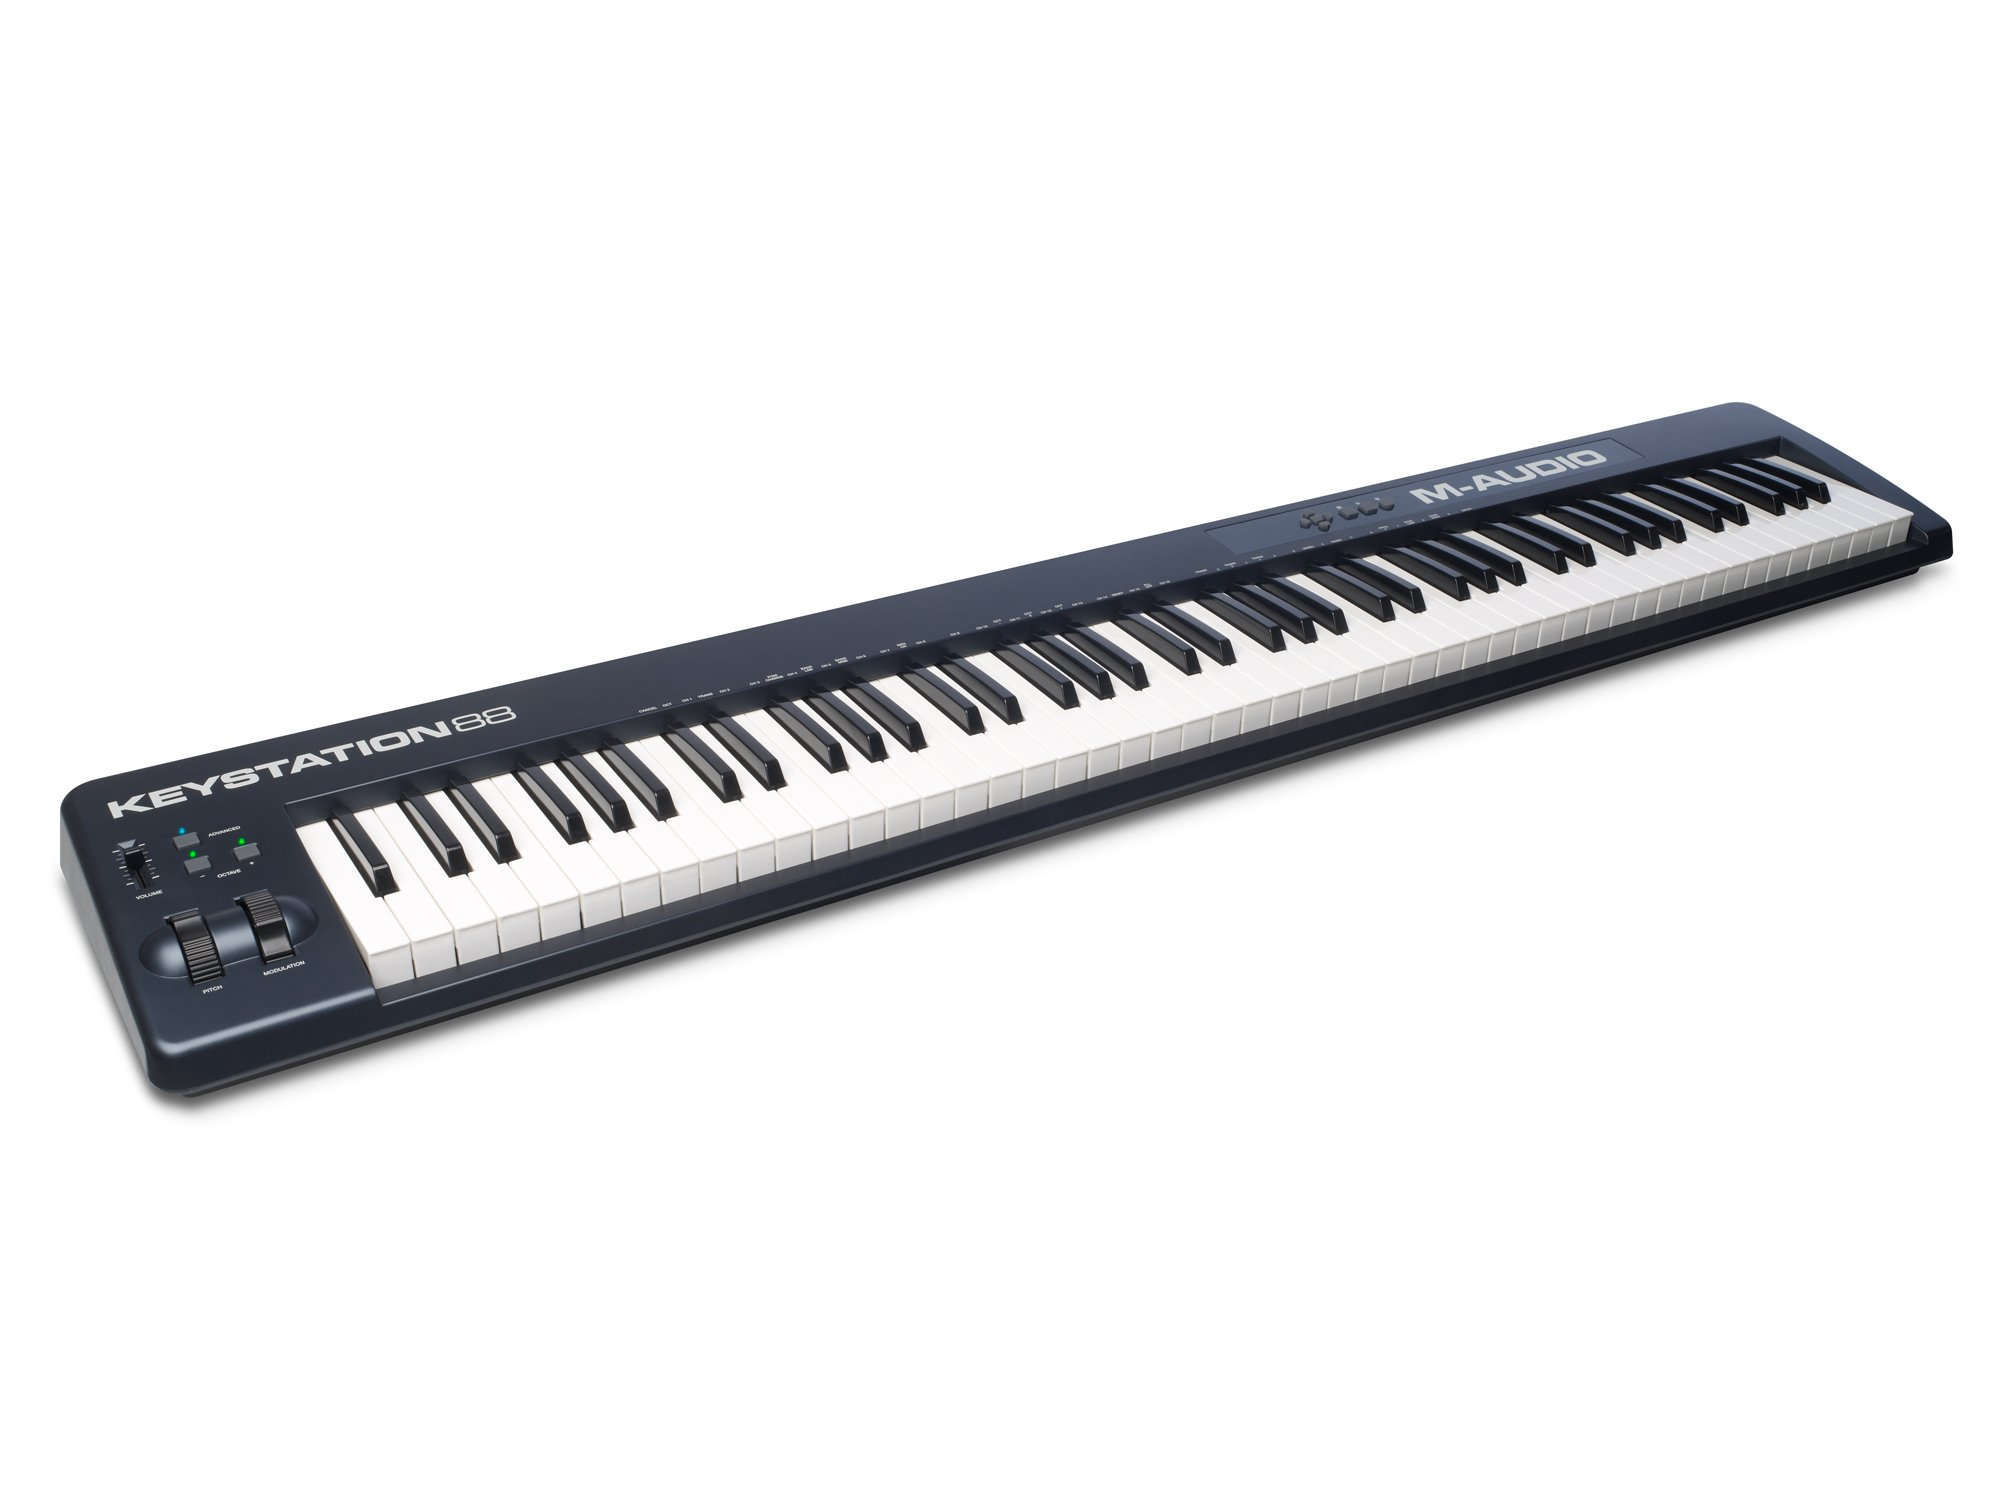 M Audio Keystation 88 II | Ultra-Portable 88 Key USB/MIDI Keyboard Controller with Synth Action Velocity Sensitive Keys Including Software from SONiVOX (Eighty Eight Ensemble) for Mac & PC by M-Audio